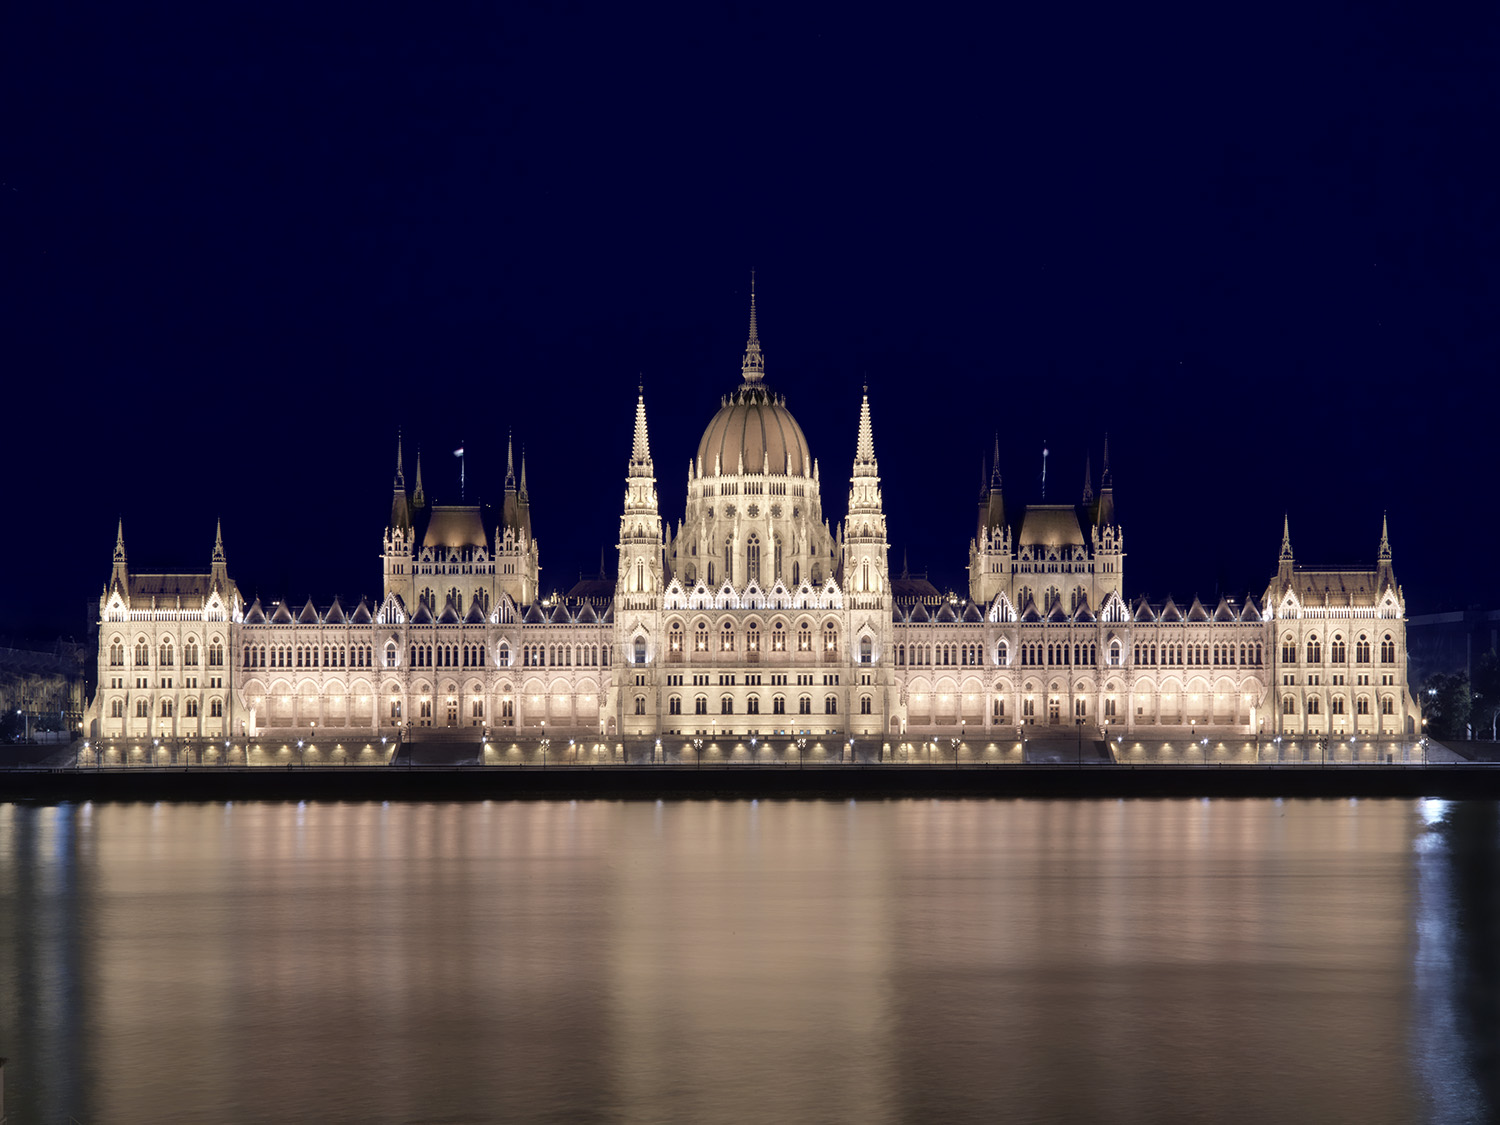 Parliament Building at Night_0009.jpg